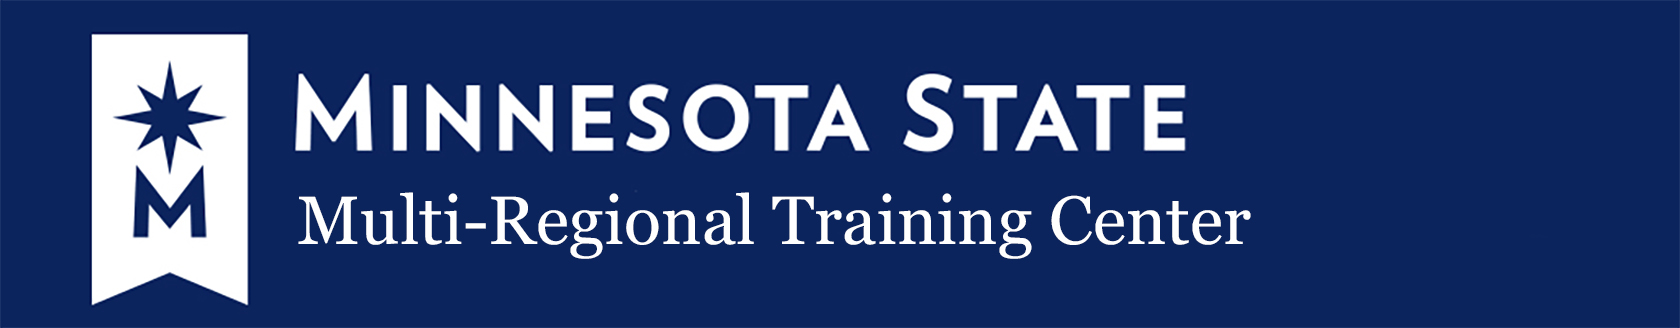 Minnesota State Multi-Regional Training Center Logo